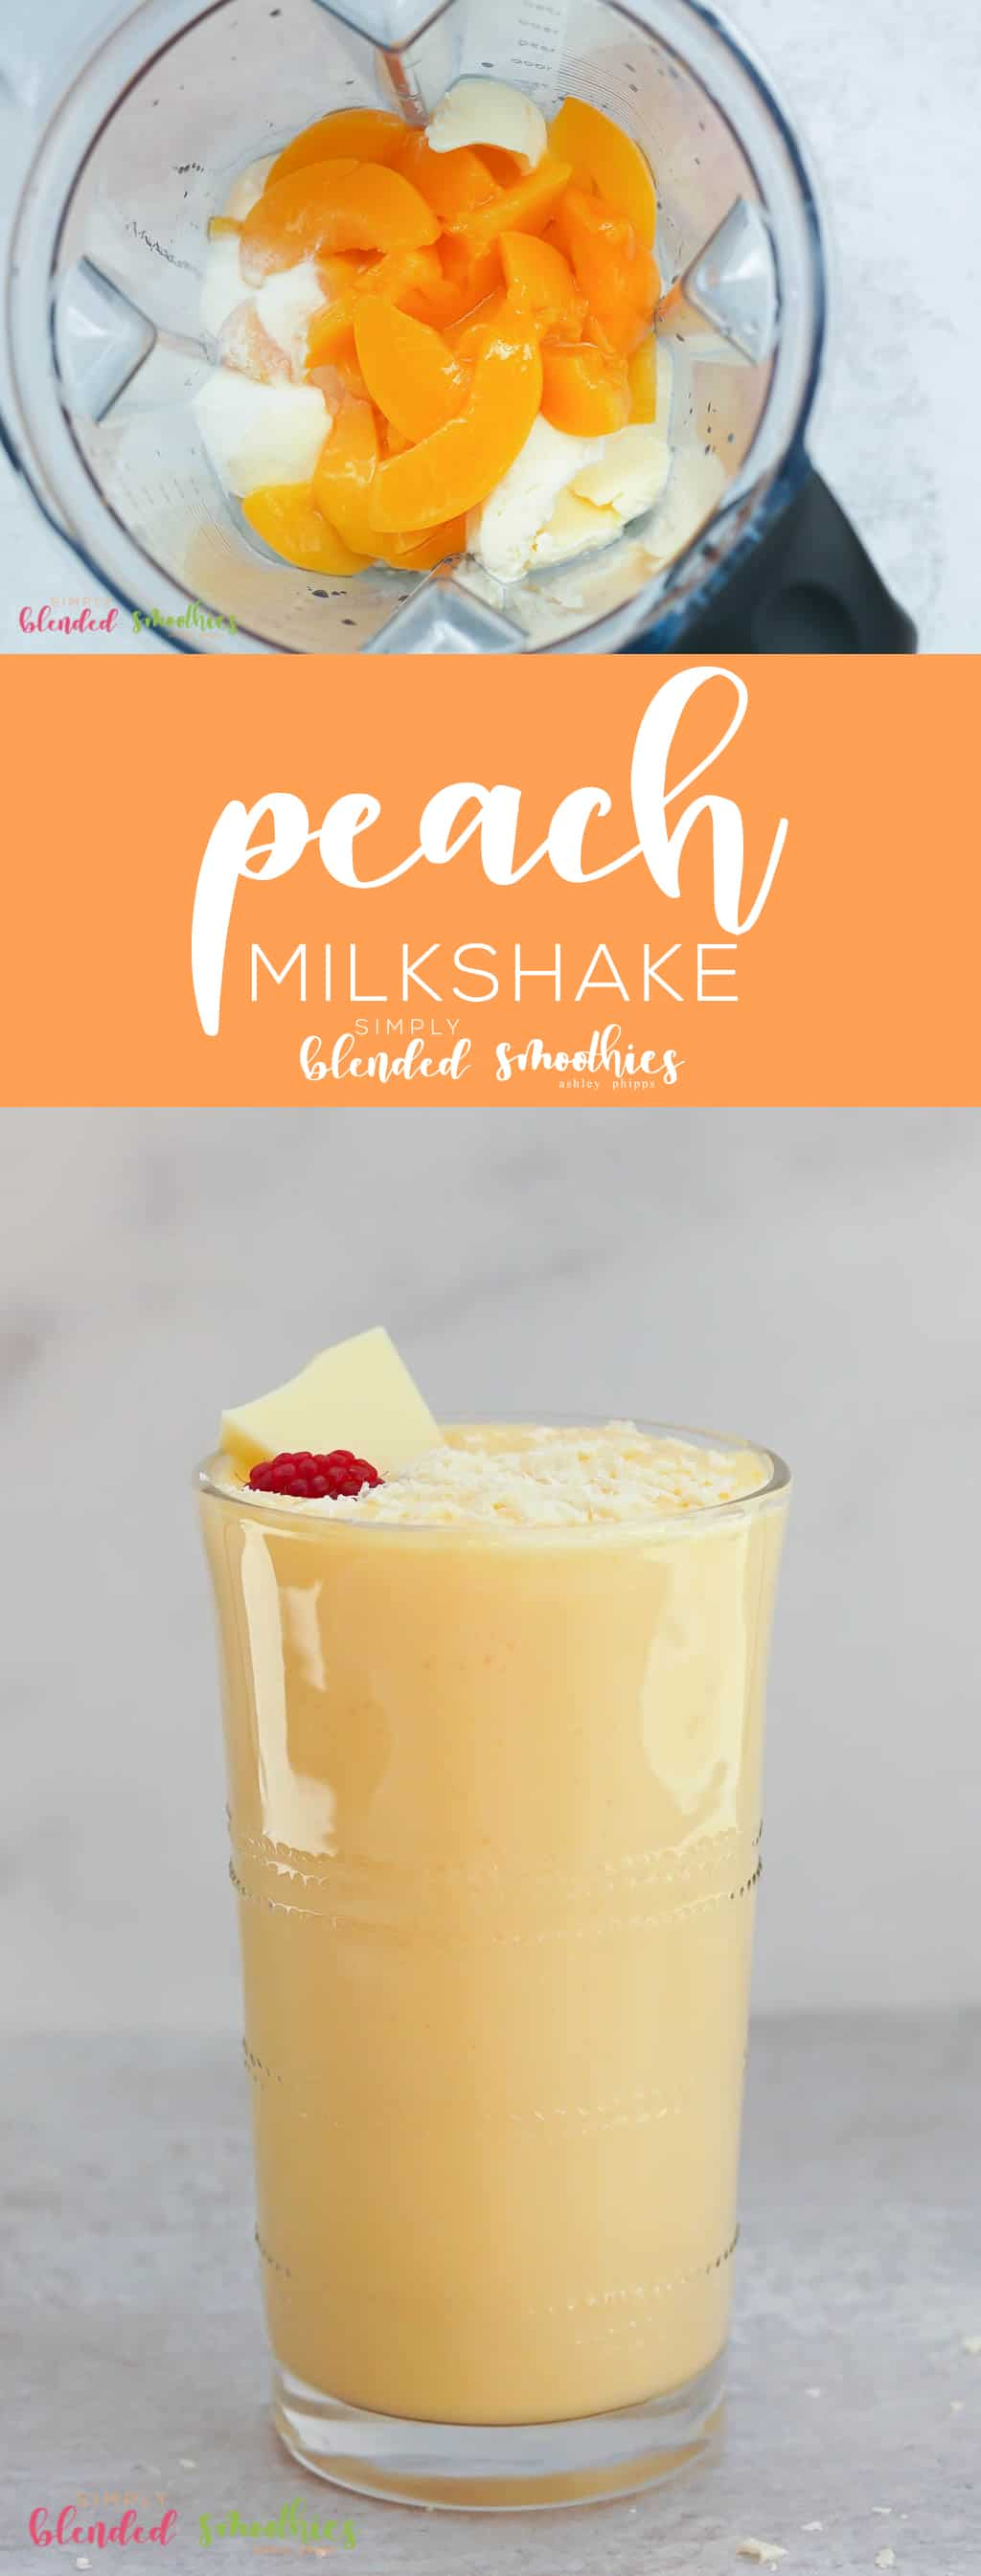 This Peach Milkshake is a deliciously sweet treat with a secret ingredient makes this irresistibly delicious